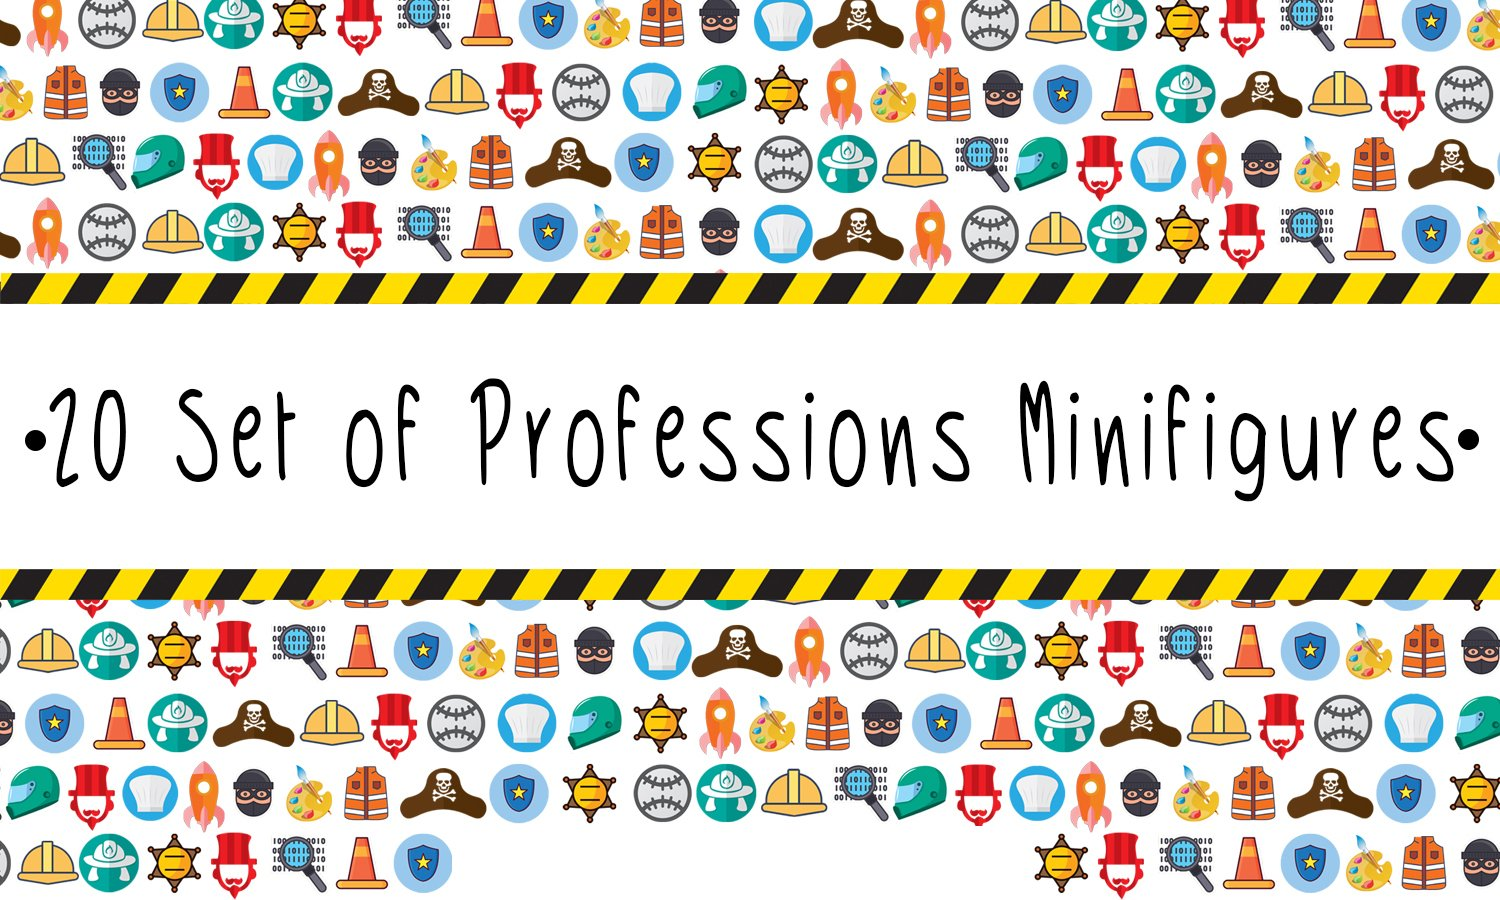 Kid\'s Corner Productions 20 Set Of Professions Action Mini Figures Toy | Kids Party Favor Goodies Bags | Best Gift For Birthdays | Special Collection Includes - Policeman, Fireman, Race Driver & More